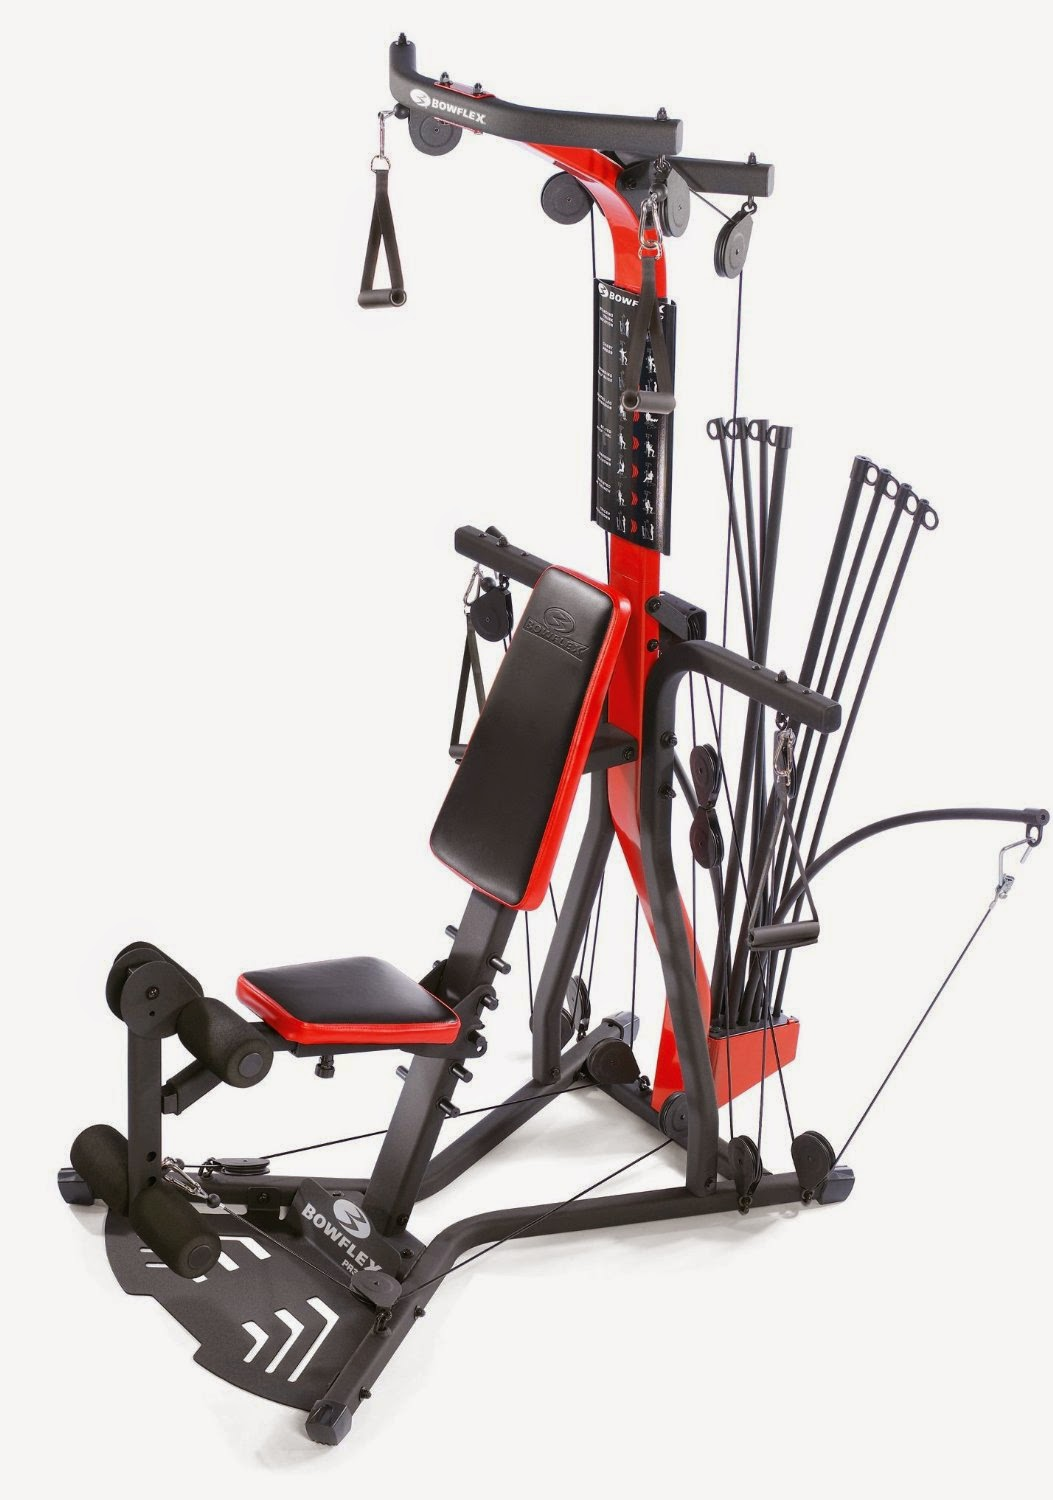 Bowflex PR3000 Home Gym, picture, review features & specifications, compare with Bowflex PR1000